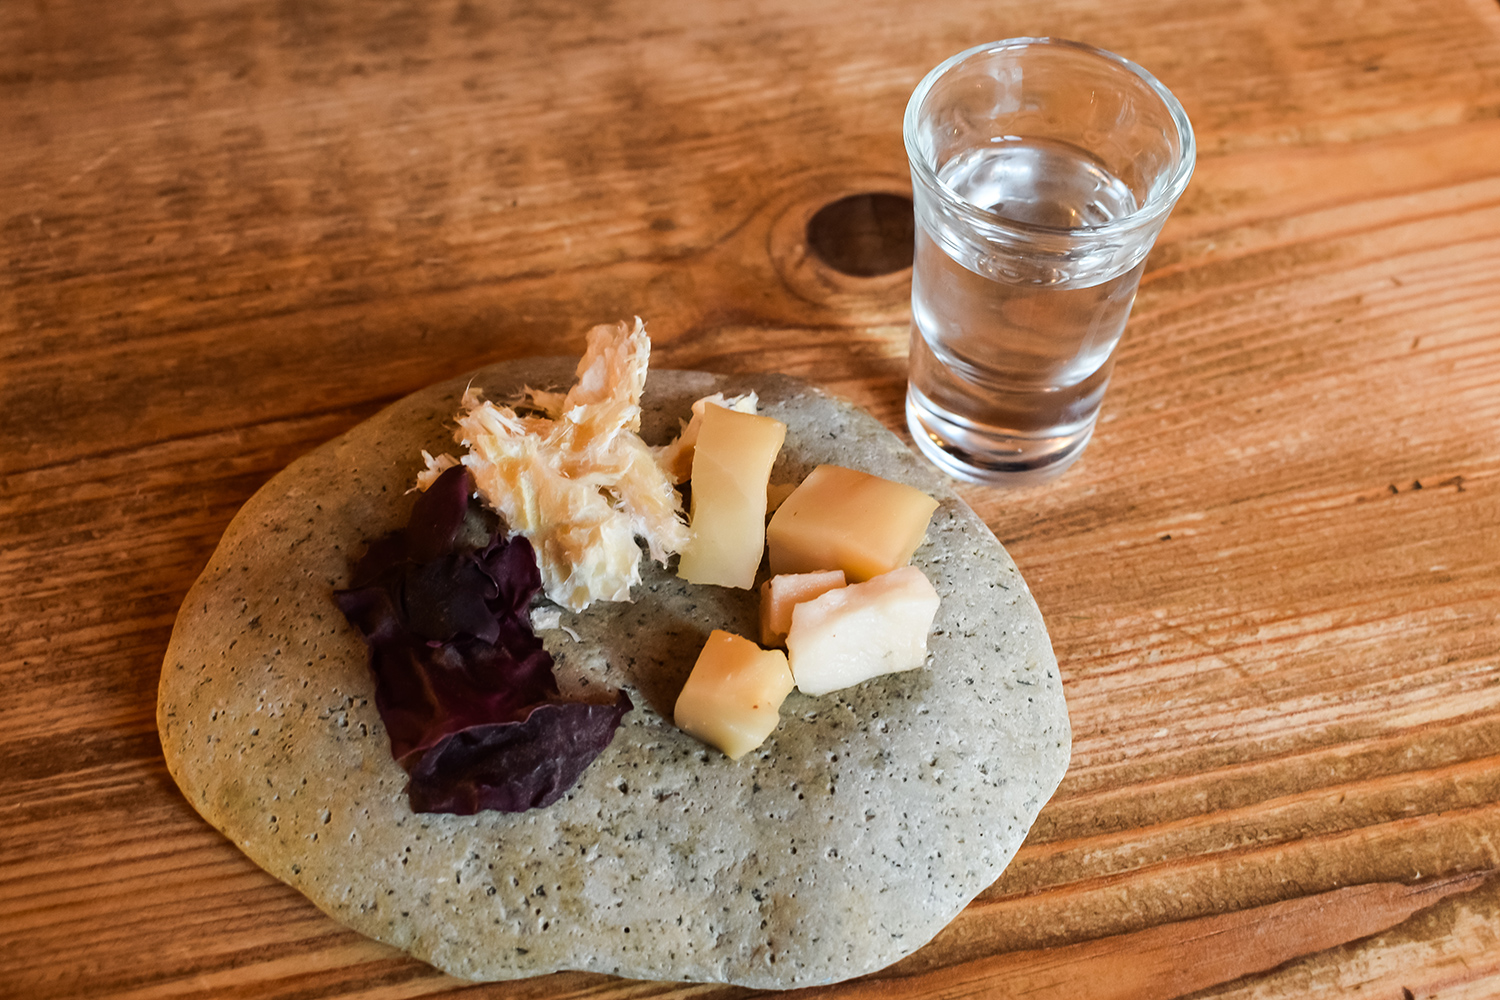 Fermented shark with vodka.